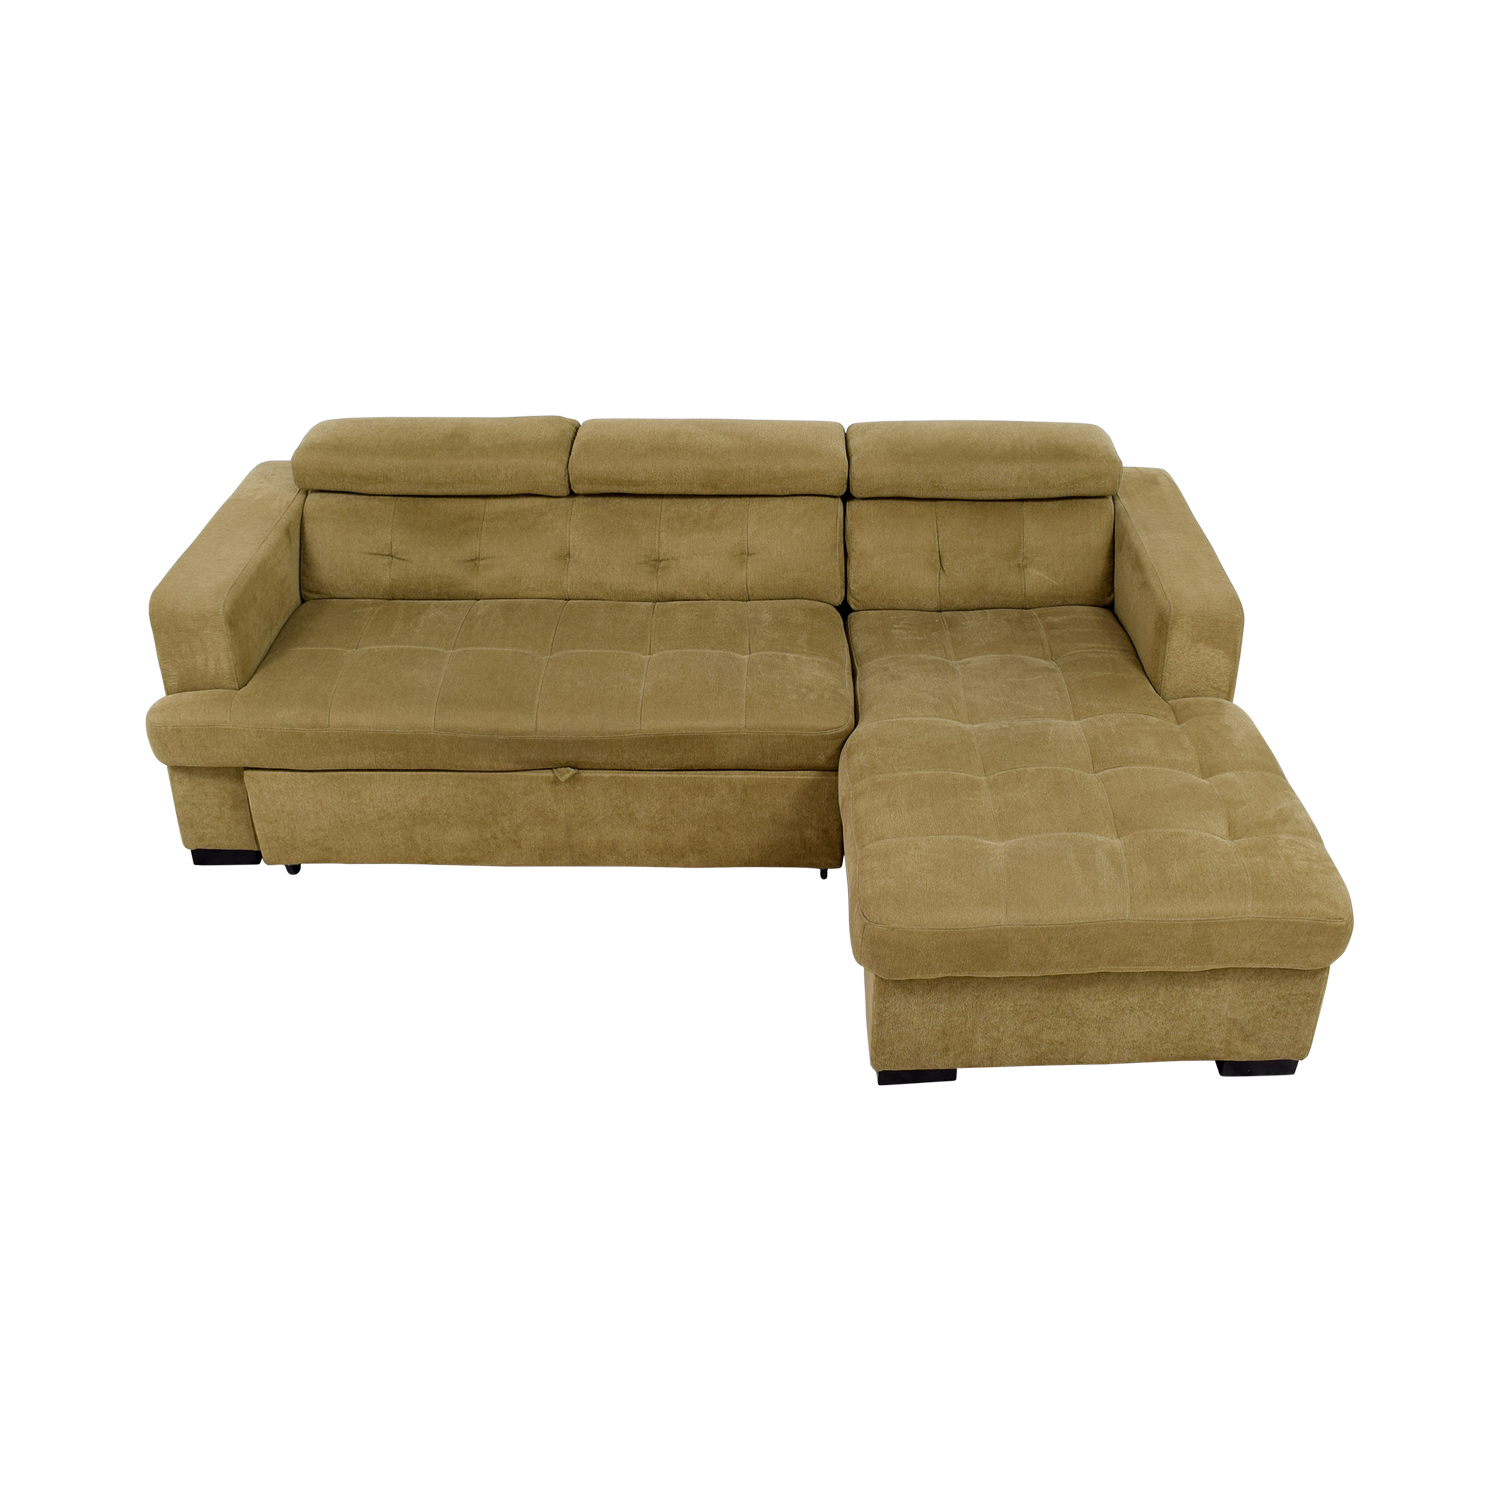 Bobs Furniture Bobs Furniture Gold Chaise Sectional Sleeper Sofa Sofas